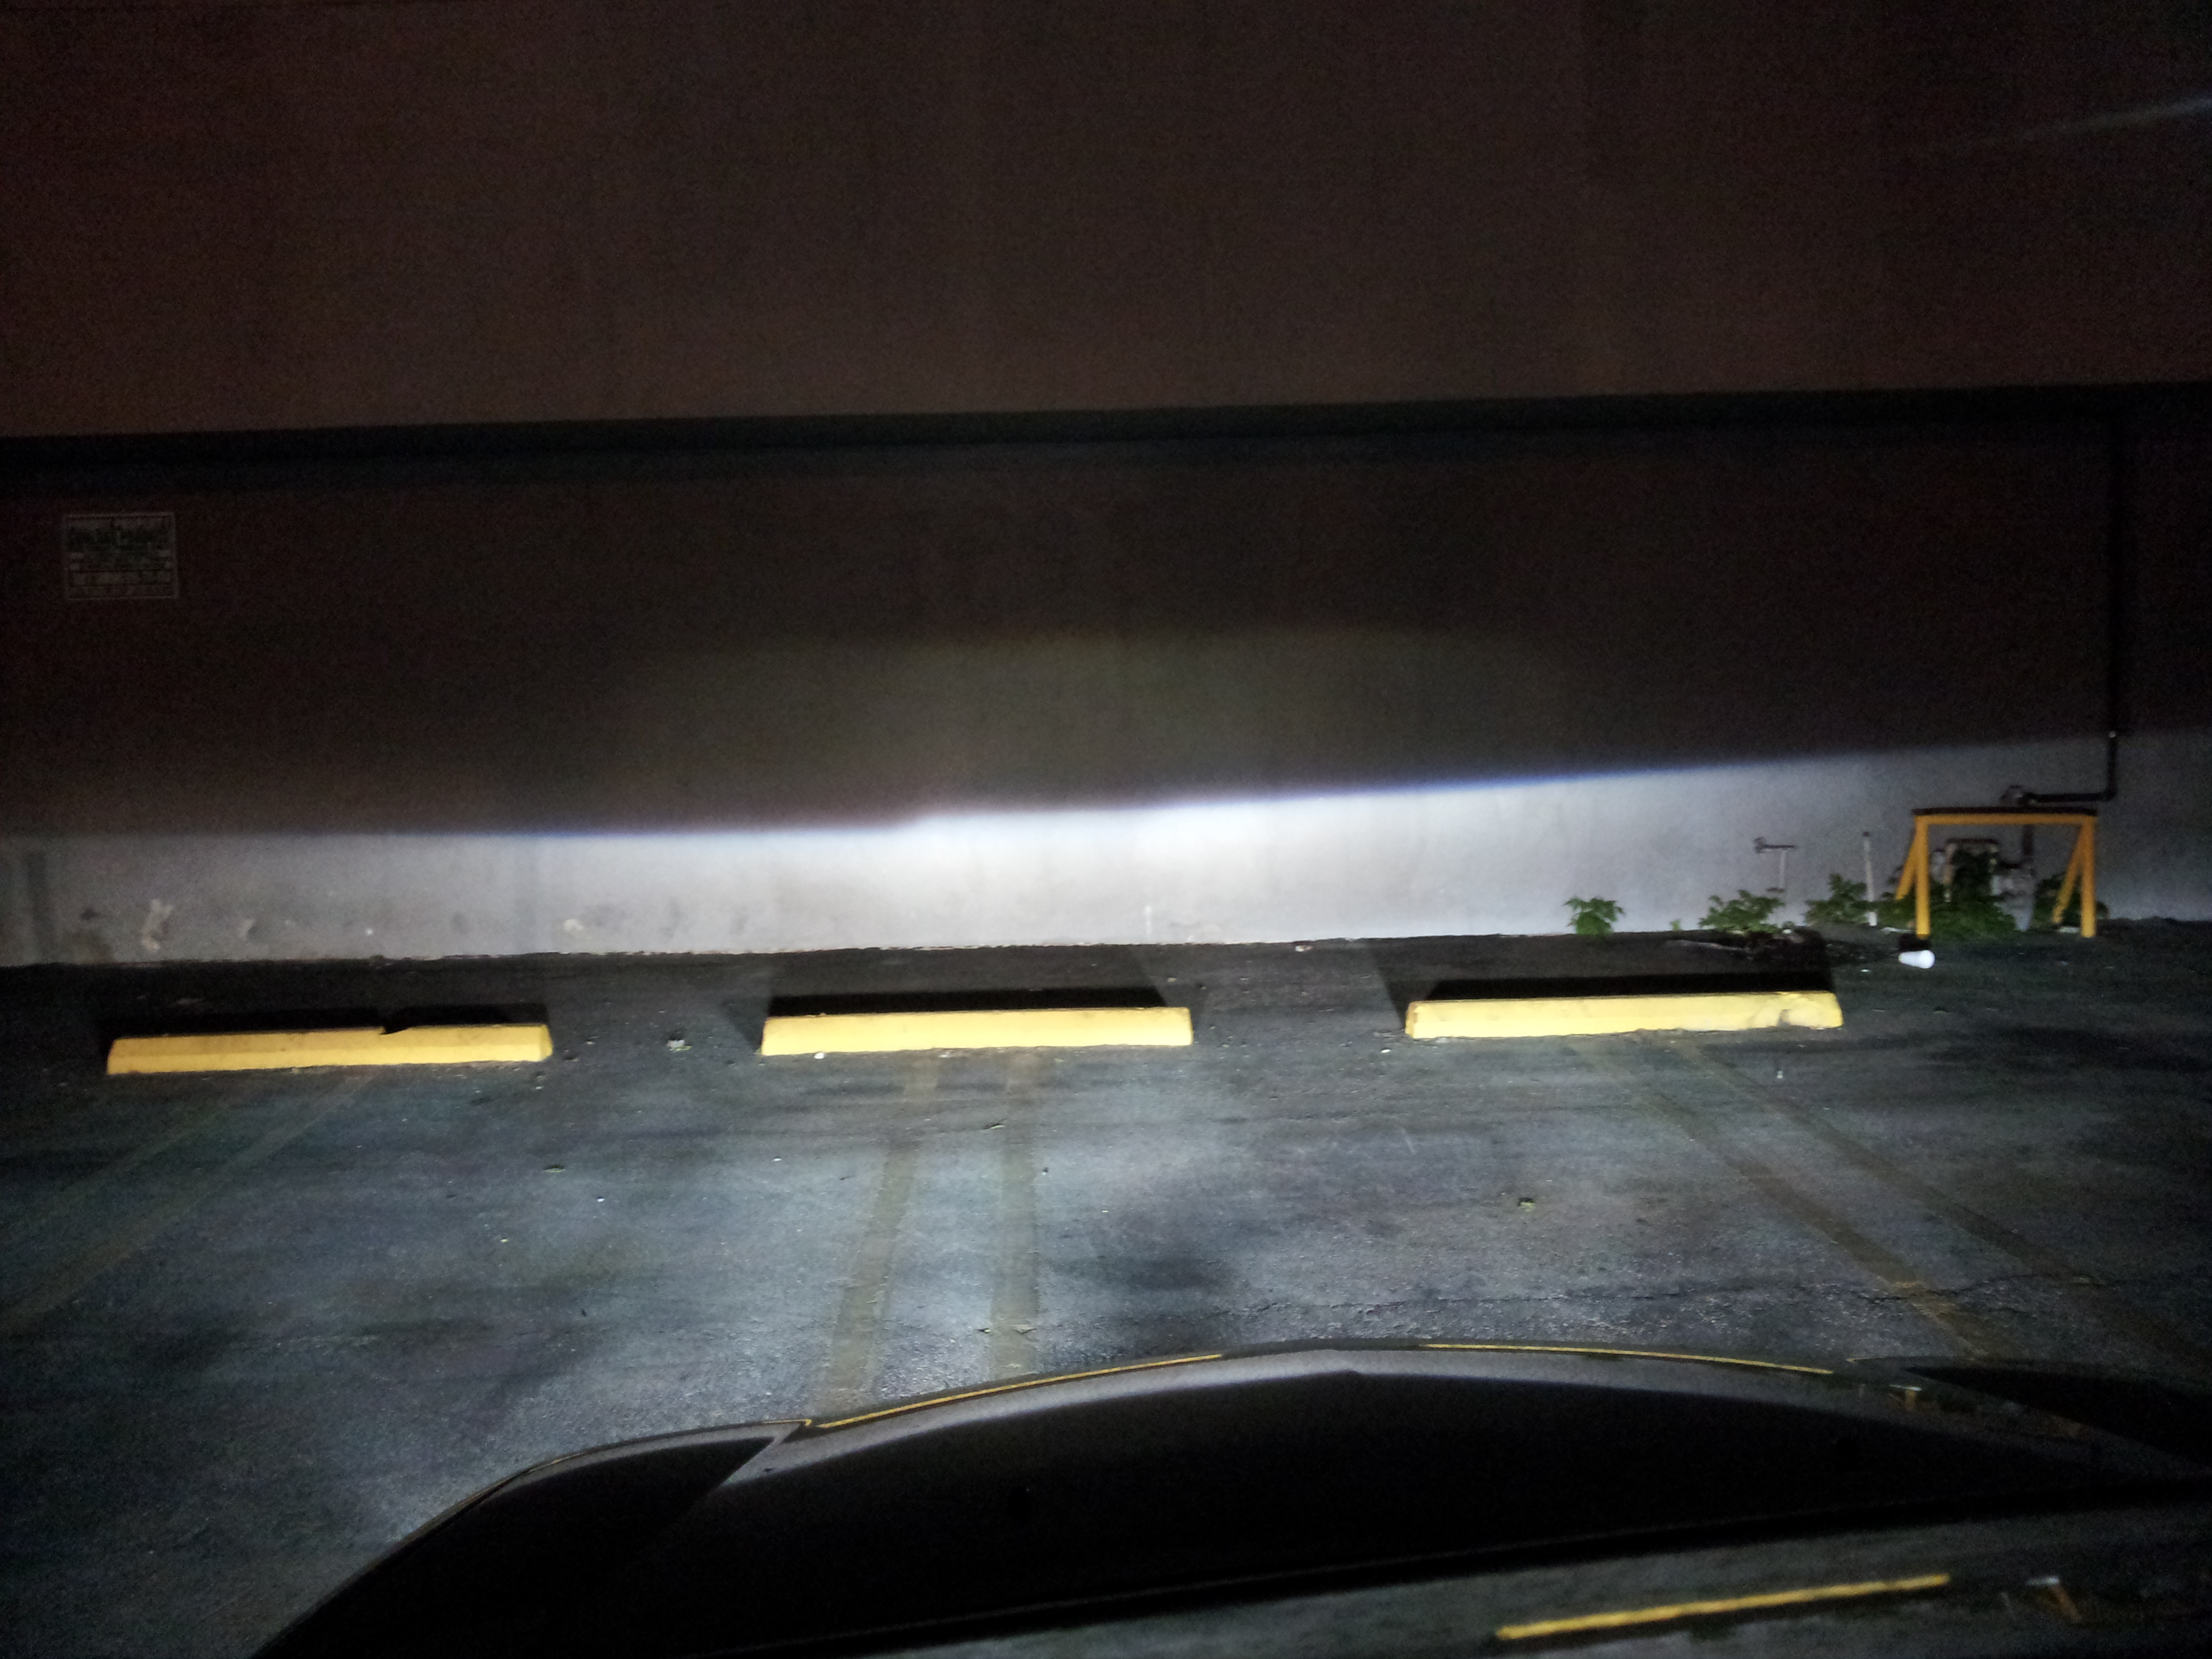 HID Fog/LED DRL Installed - PICS-wall-.jpg